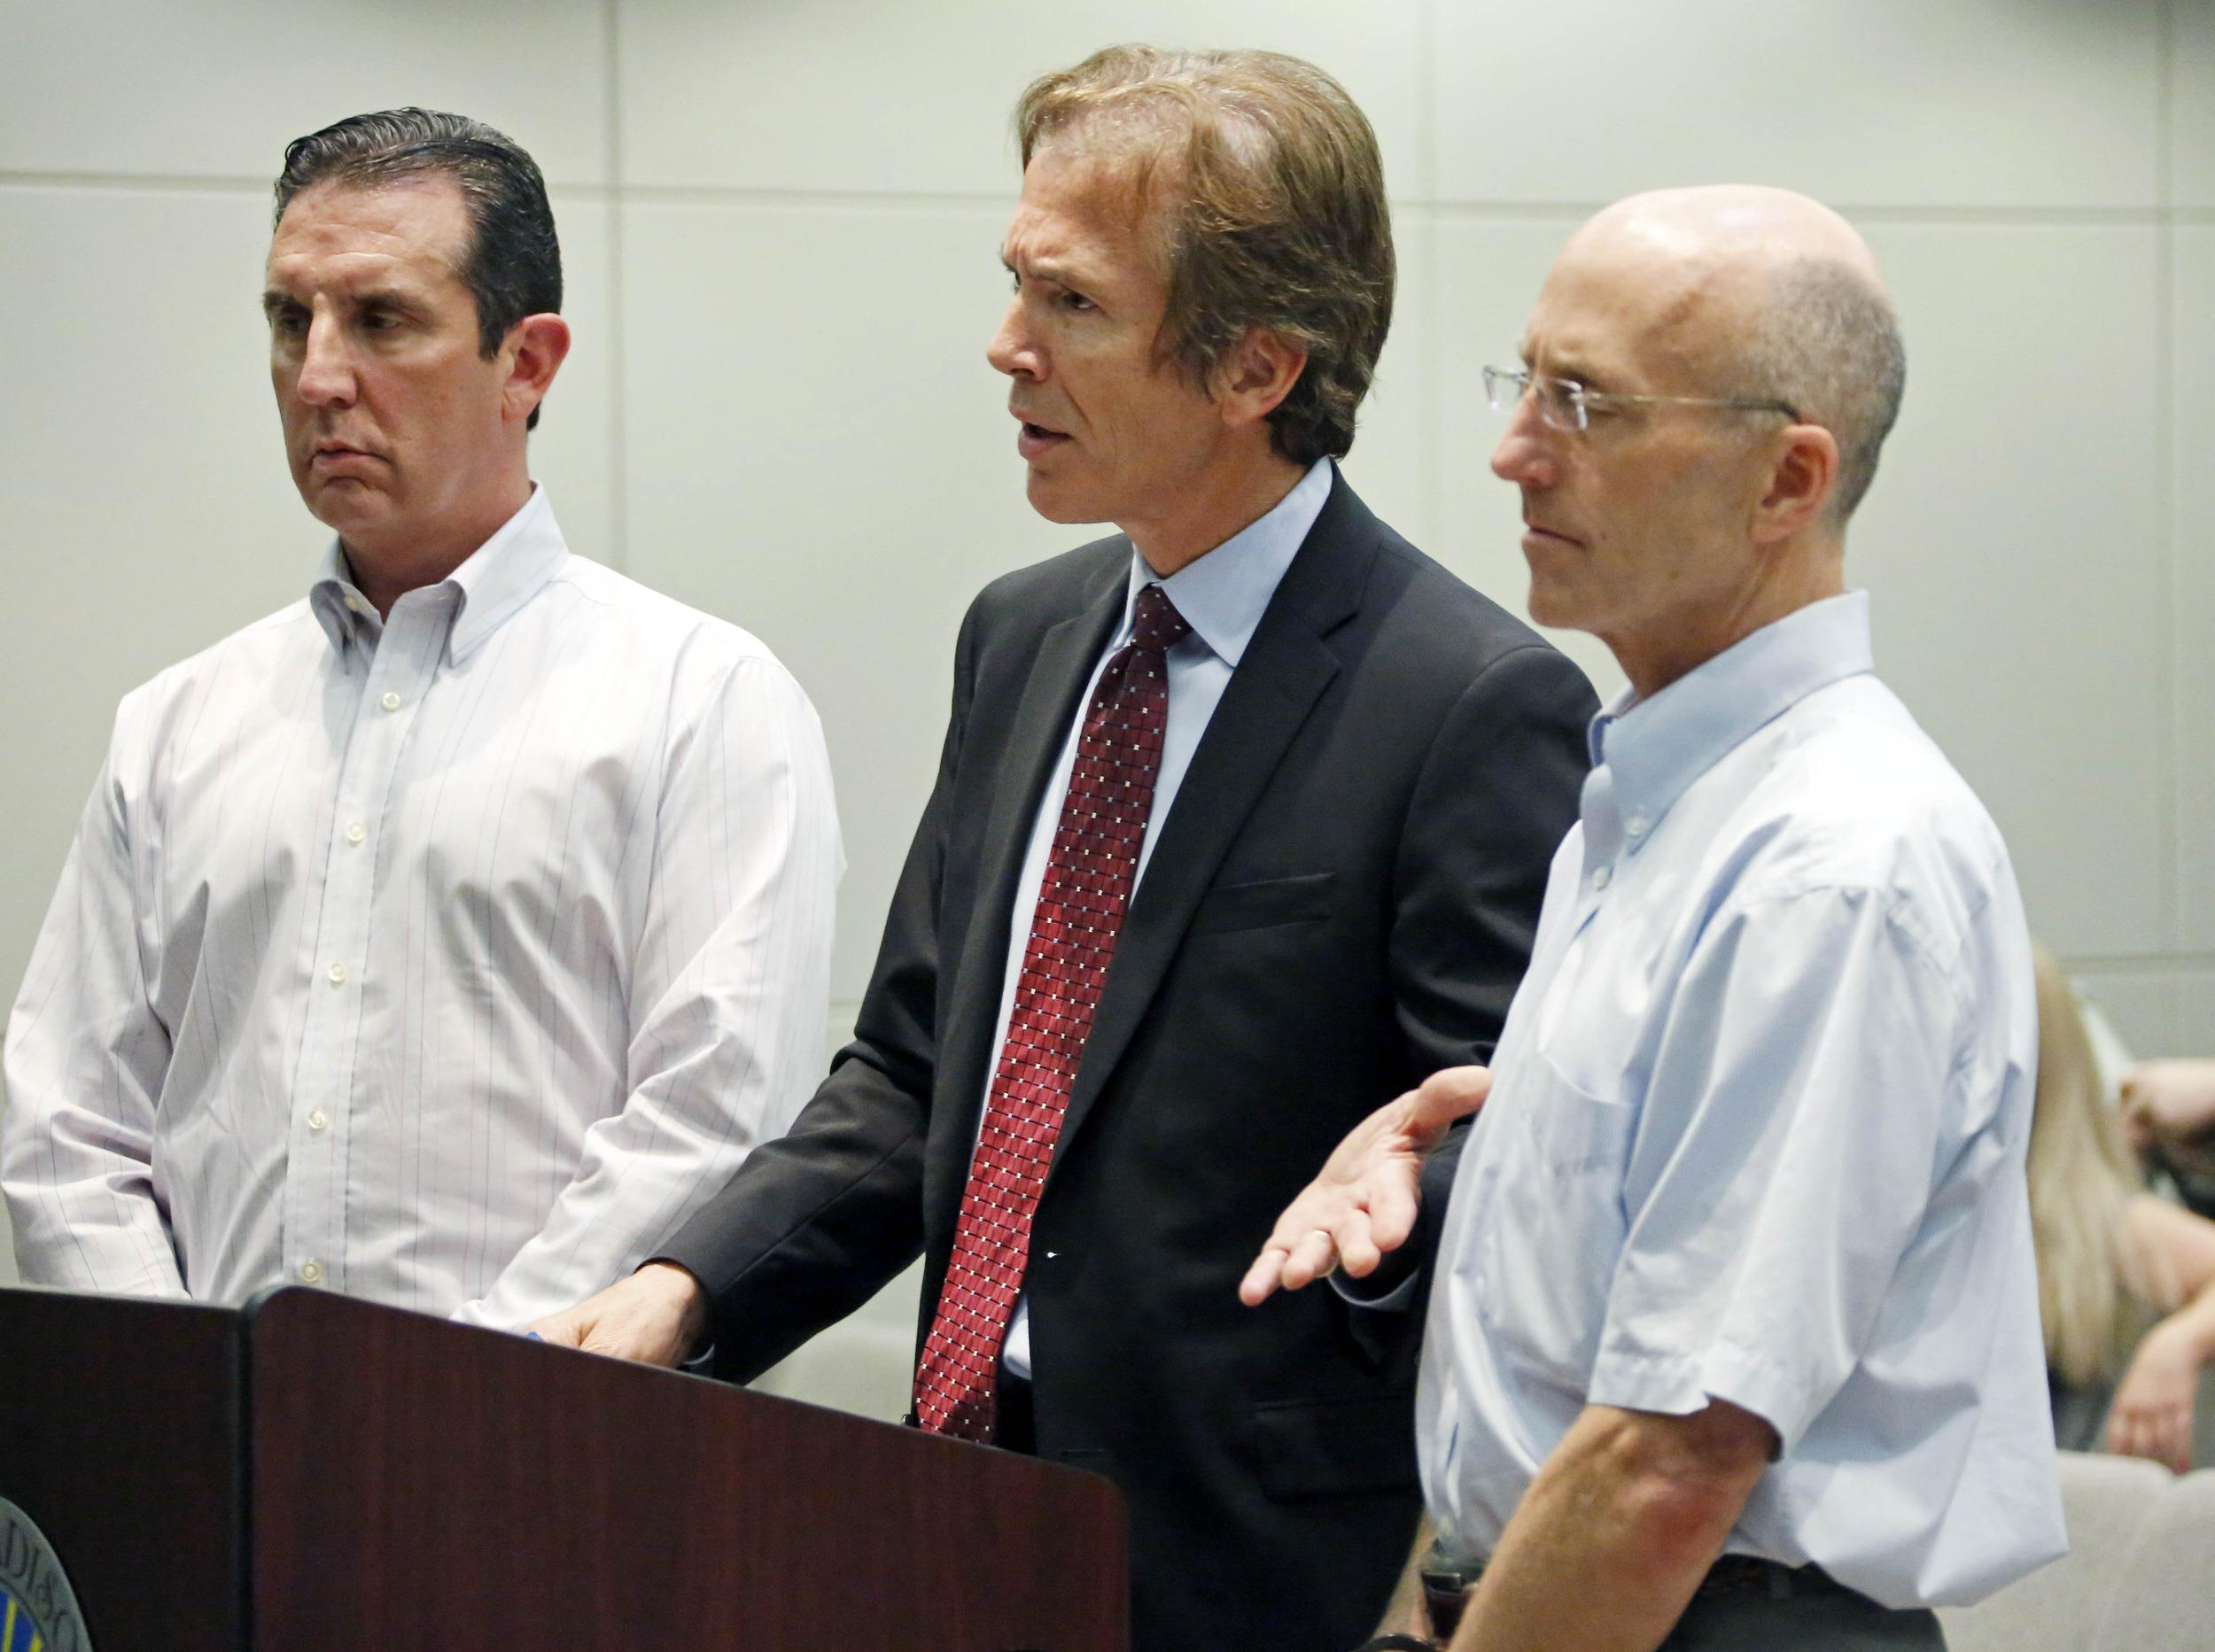 Image: Mark Mayfield, Merrida Coxwell, John Reeves